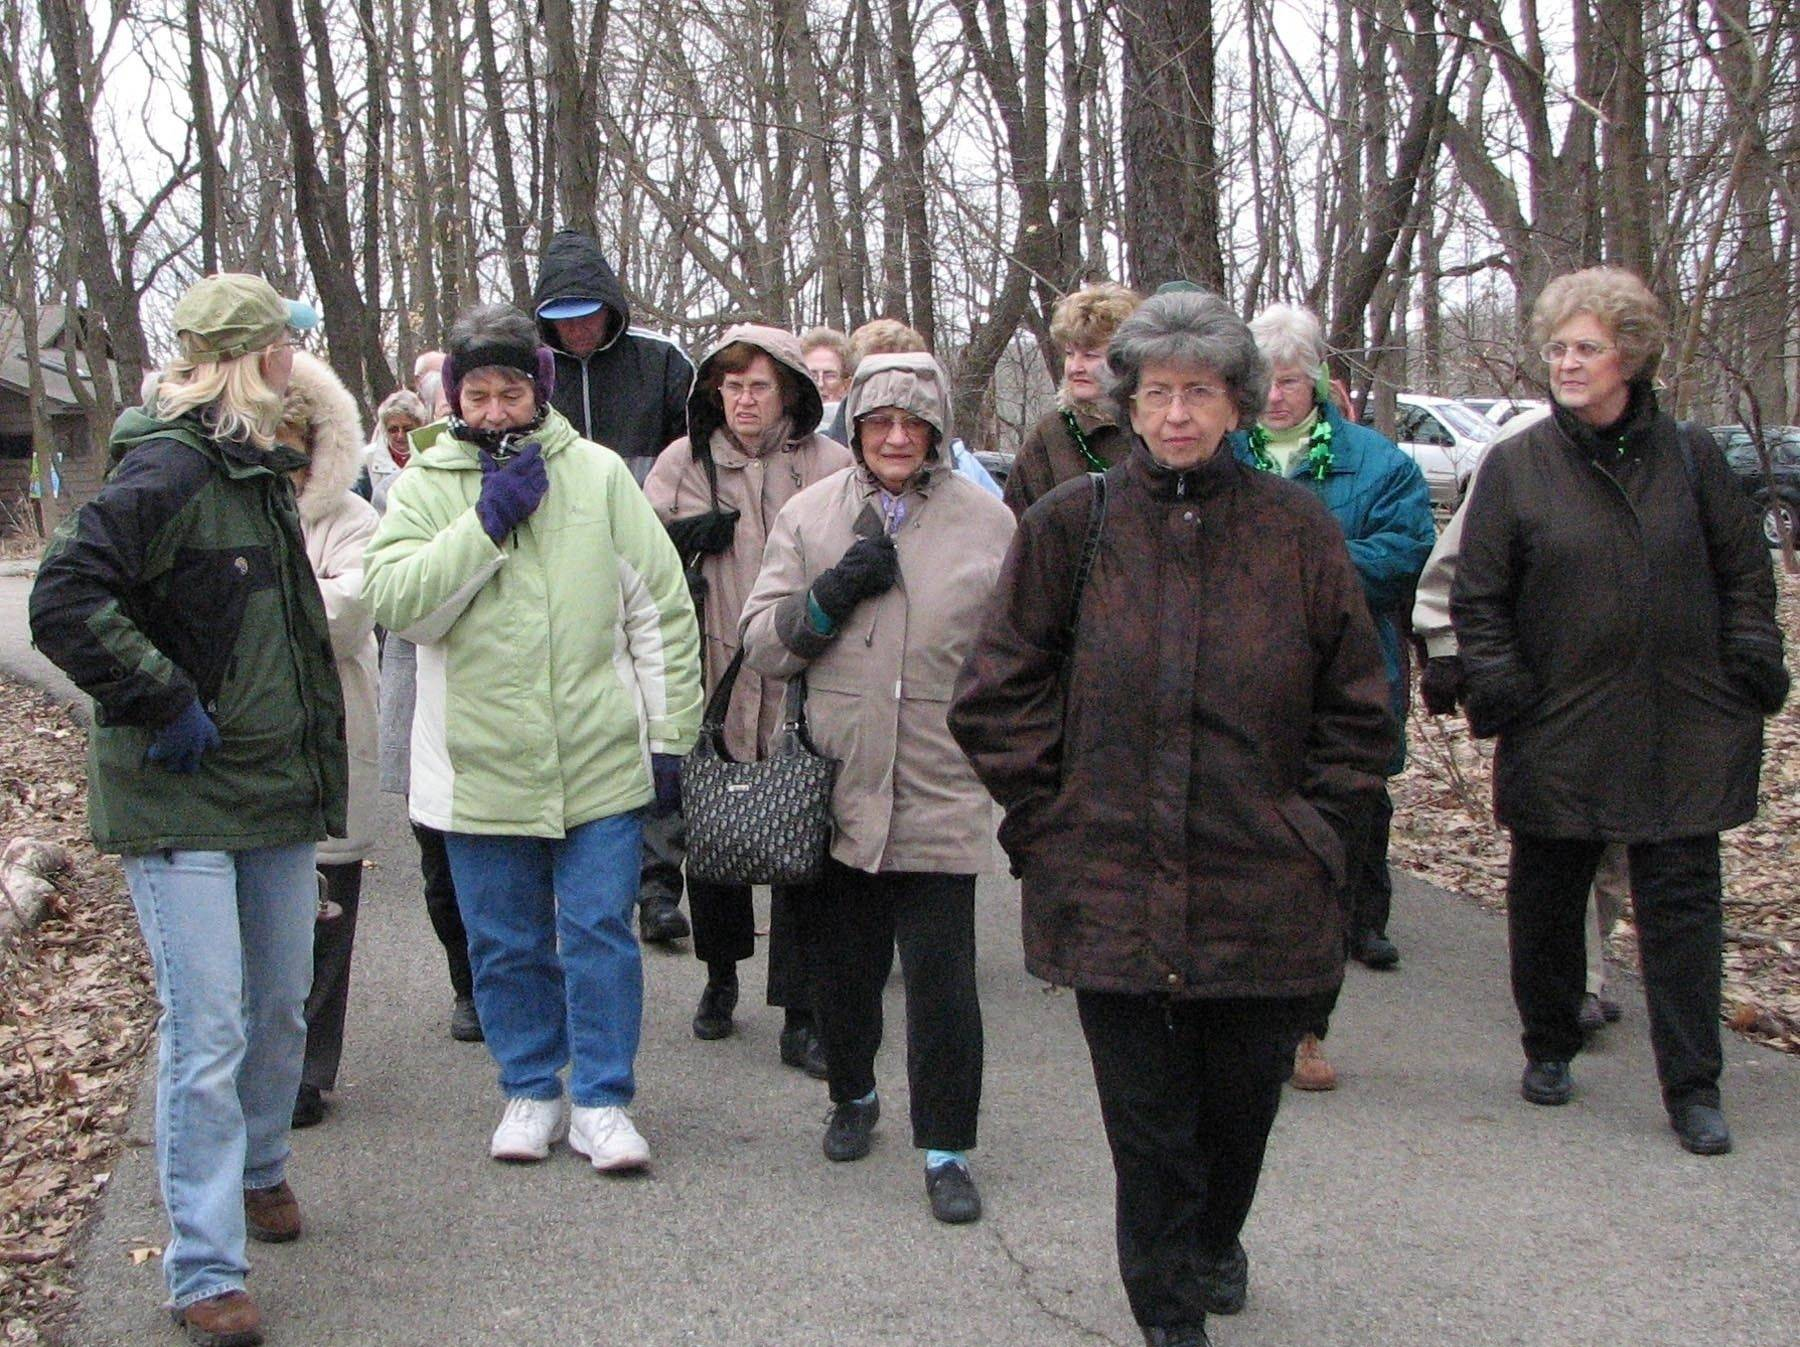 With warmer weather on the way, local trails will soon be bustling with walkers -- including those from a new 50-and-older walking group. The Fox Valley Park District will launch the group this month as part of a national initiative to develop healthier communities through walking.